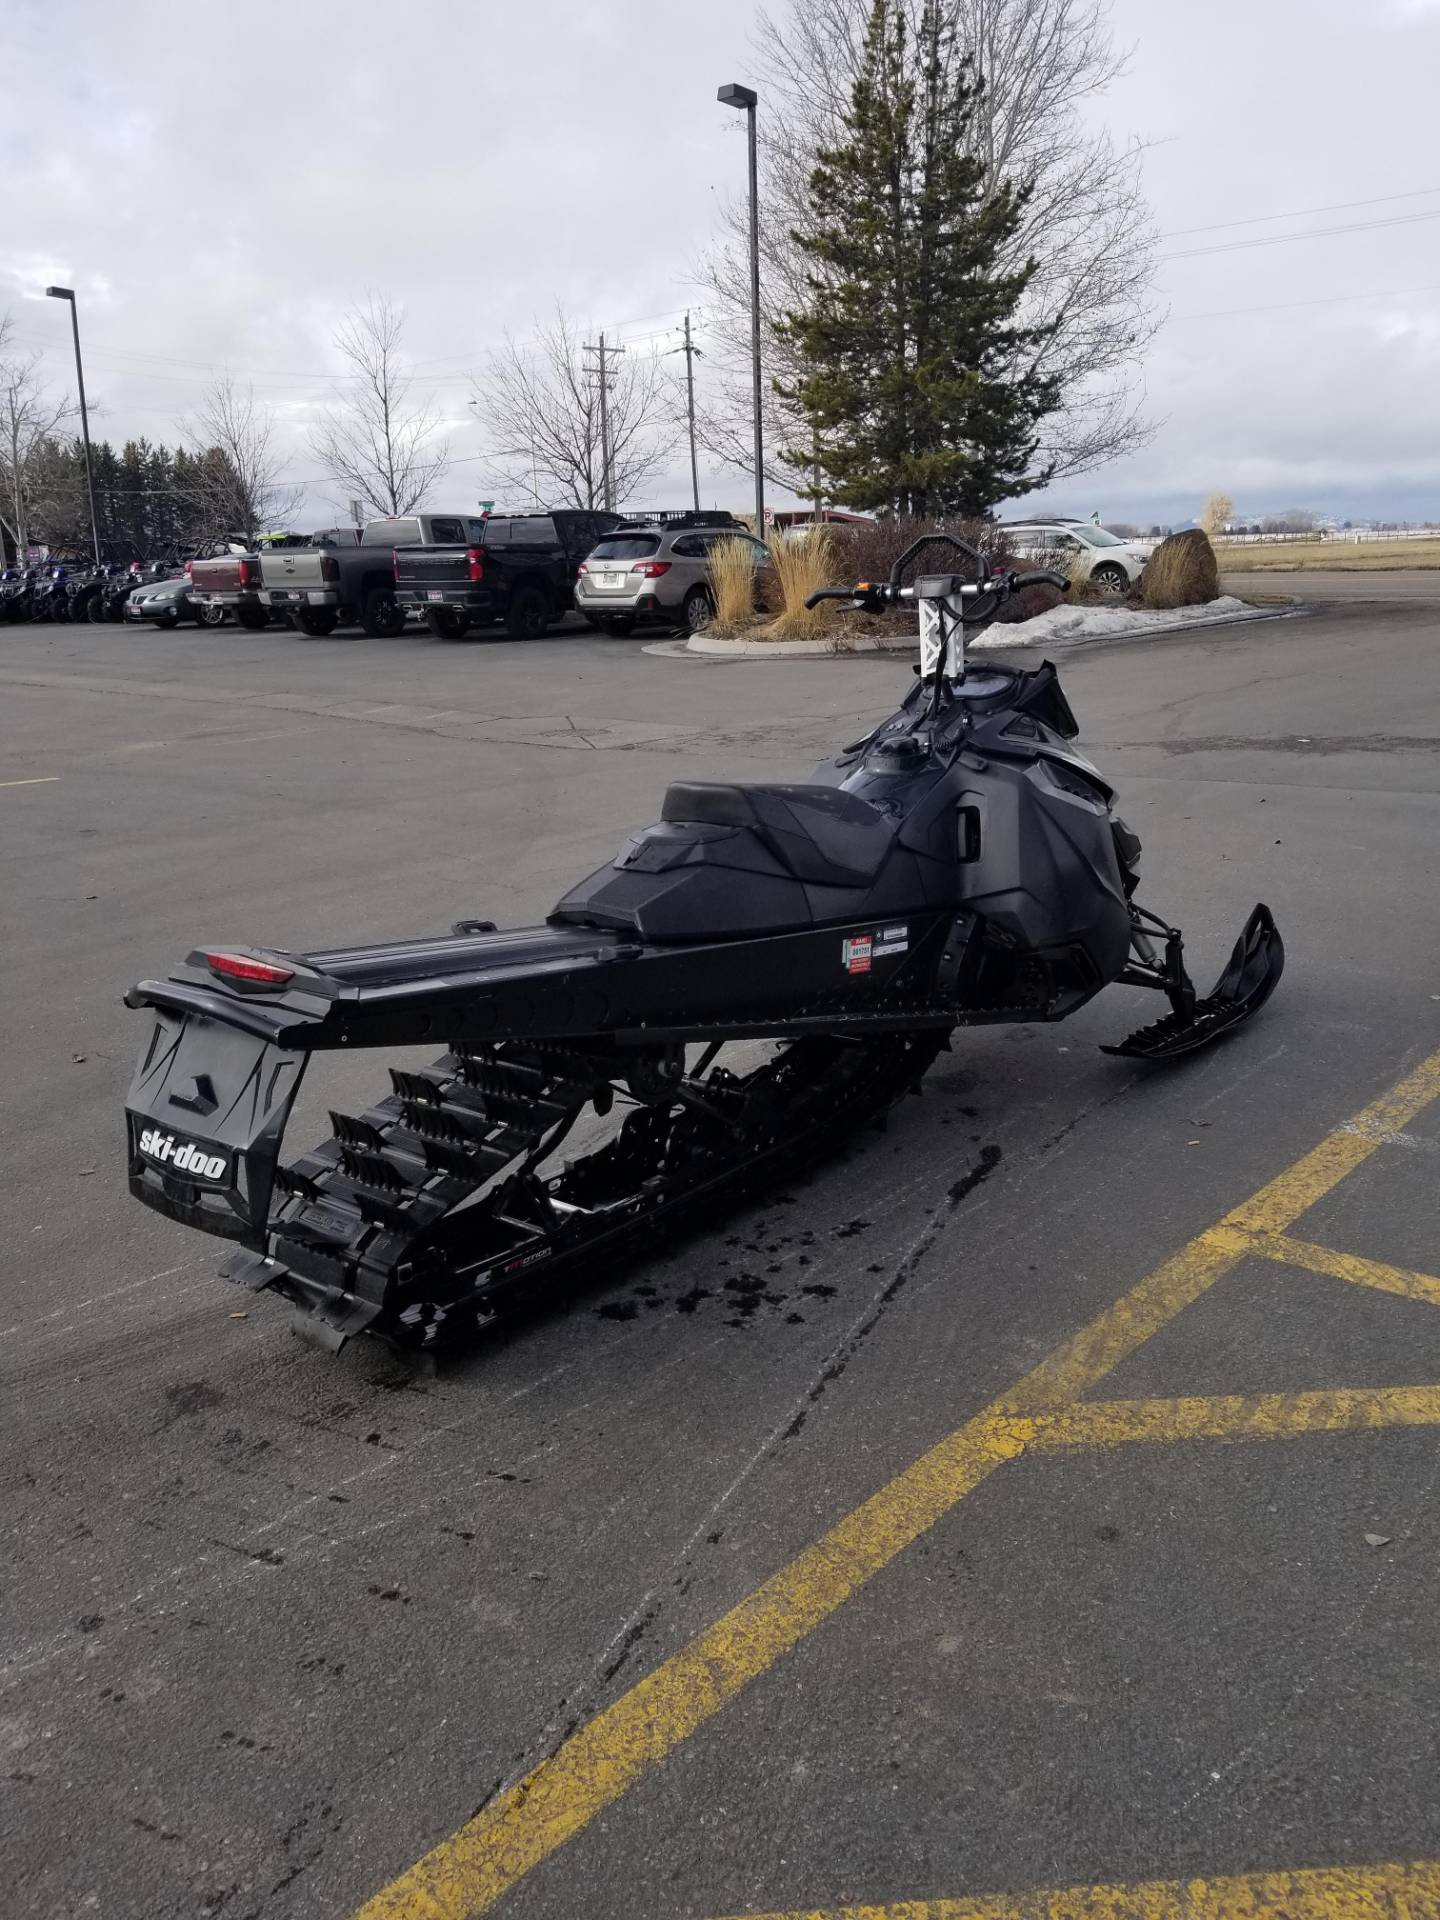 2013 Ski-Doo Summit® X® E-TEC 800R 154 in Rexburg, Idaho - Photo 7